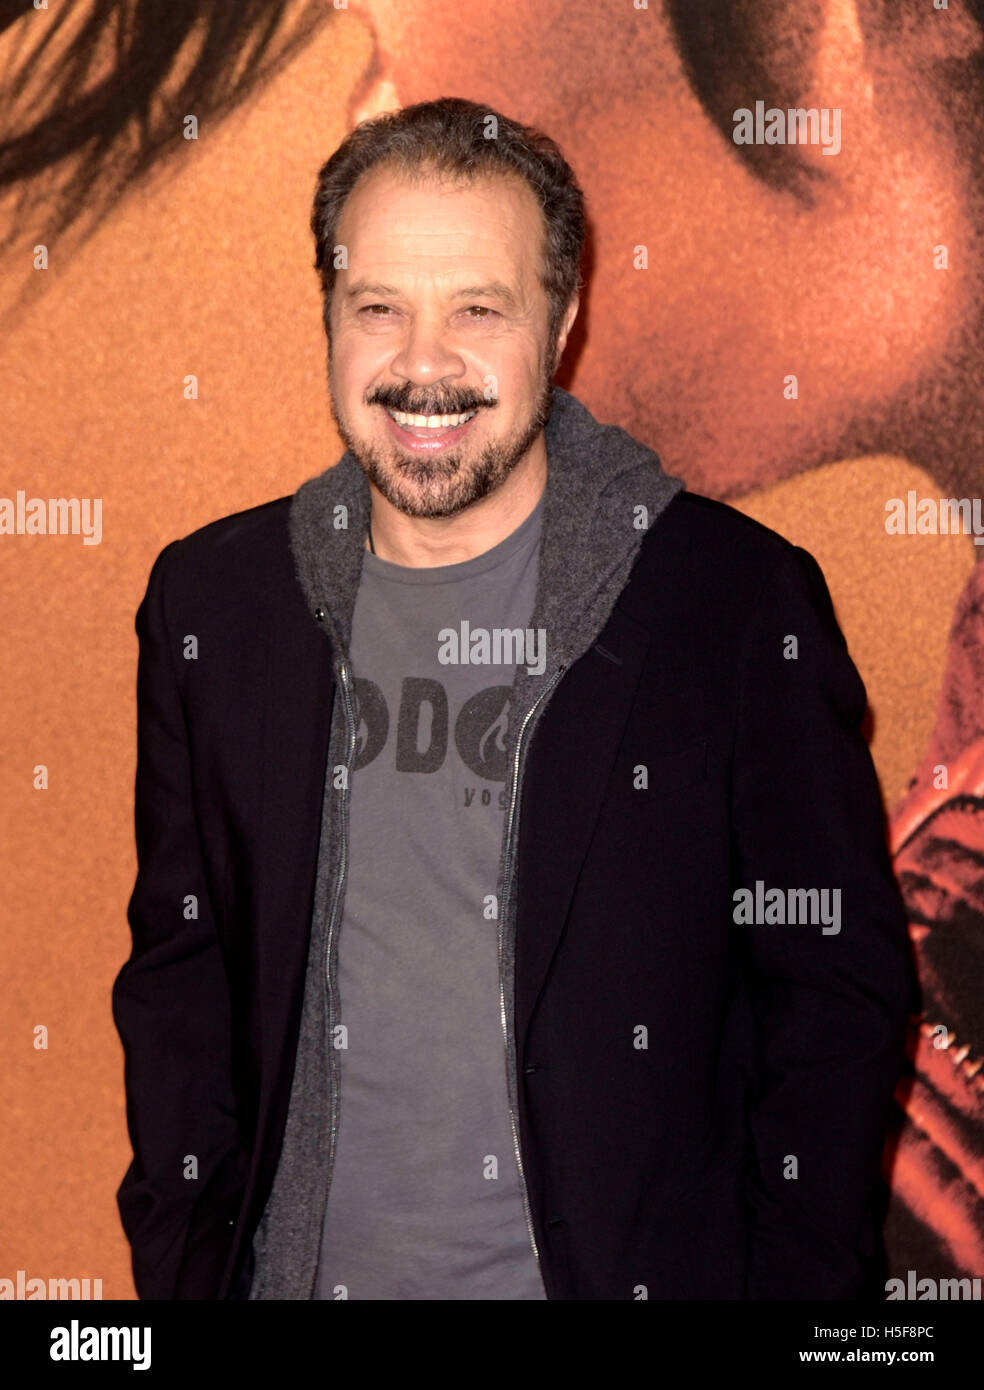 London, UK. 20th October, 2016. Edward Zwick attending  the European  Premiere of JACK REACHER   at the Cineworld - Stock Image